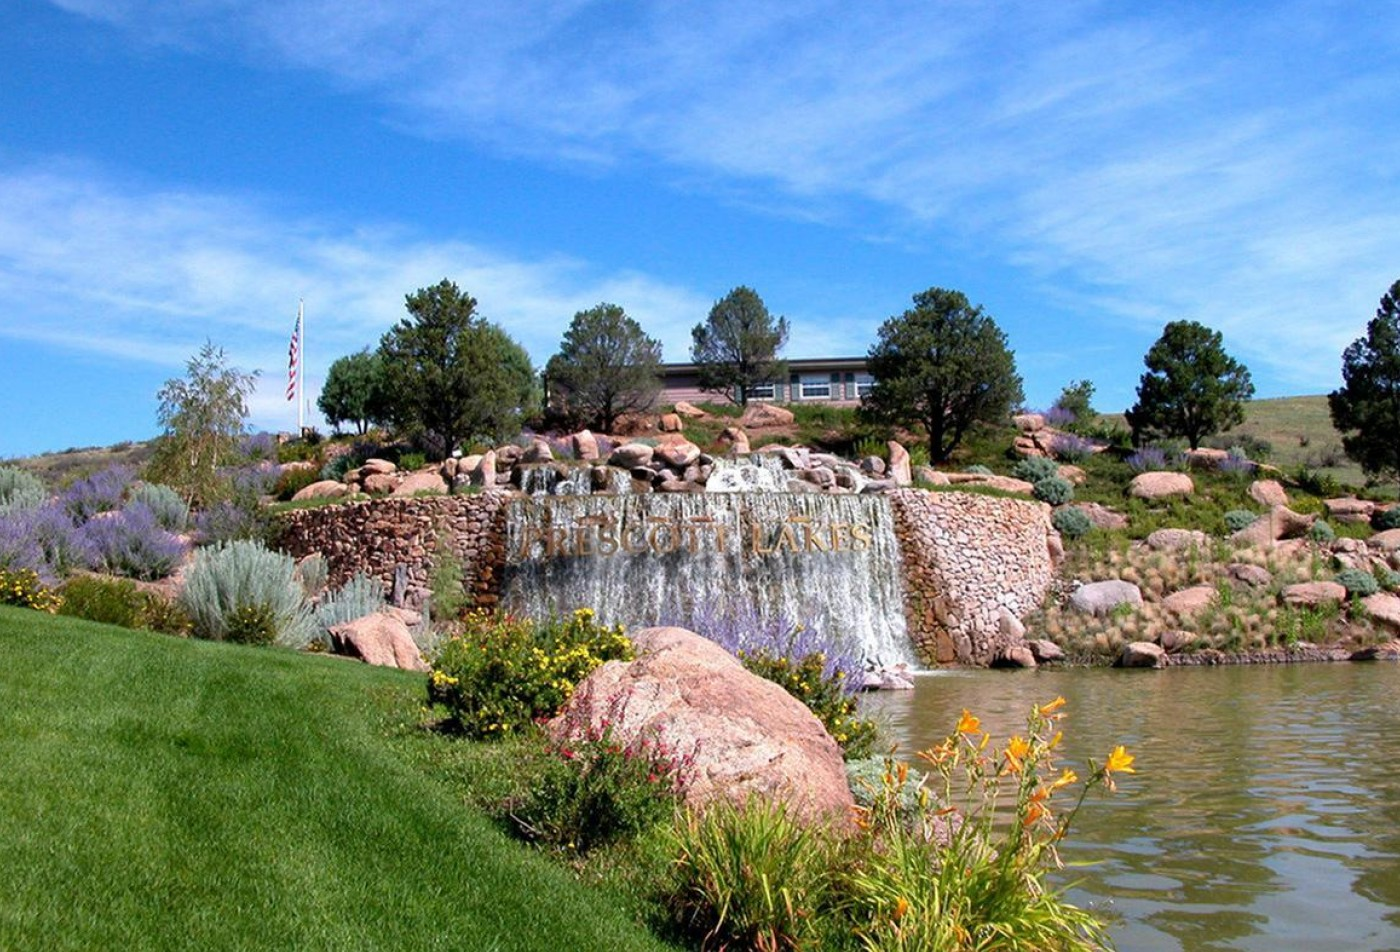 Prescott Lakes Senior Apartments Prescott, AZ landscaping